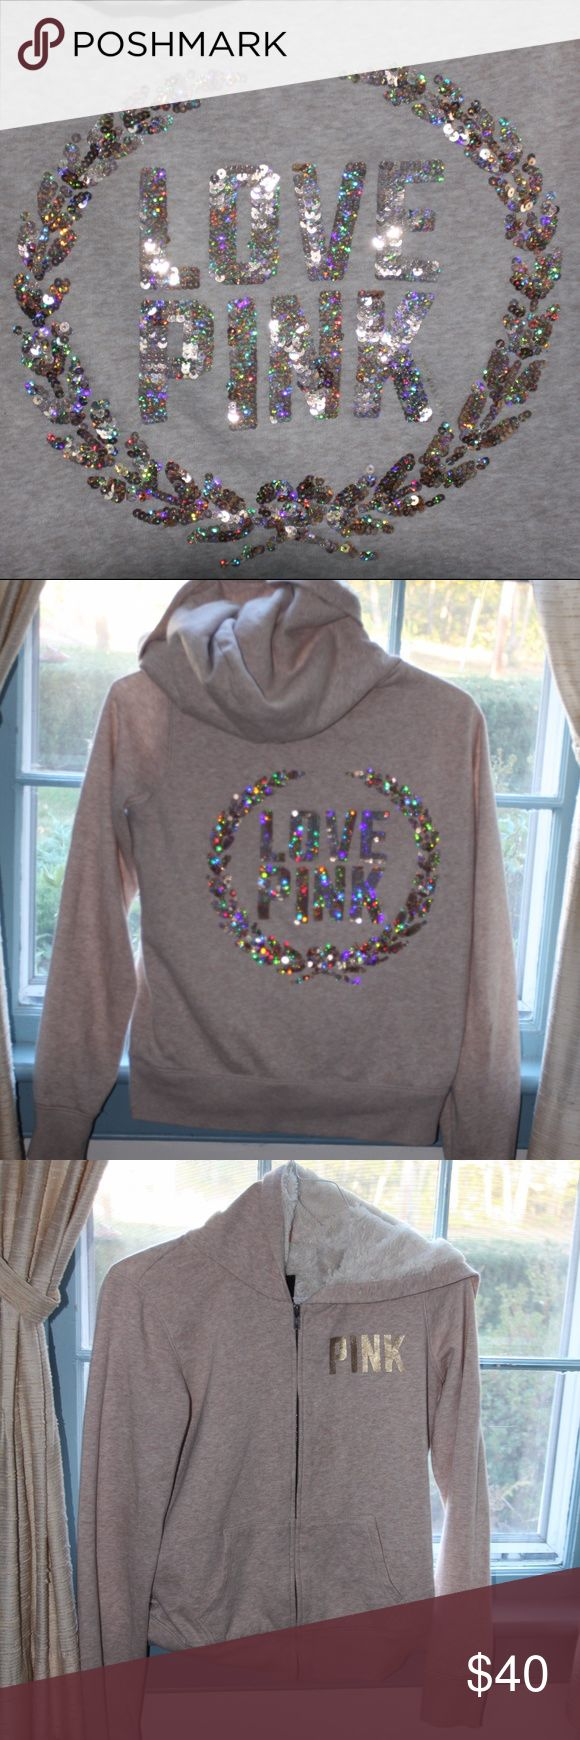 Rare vs pink bling fur zip up hoodie Rare vs pink cream, white and gold bling fur zip up hoodie  size small in perfect condition PINK Victoria's Secret Tops Sweatshirts & Hoodies